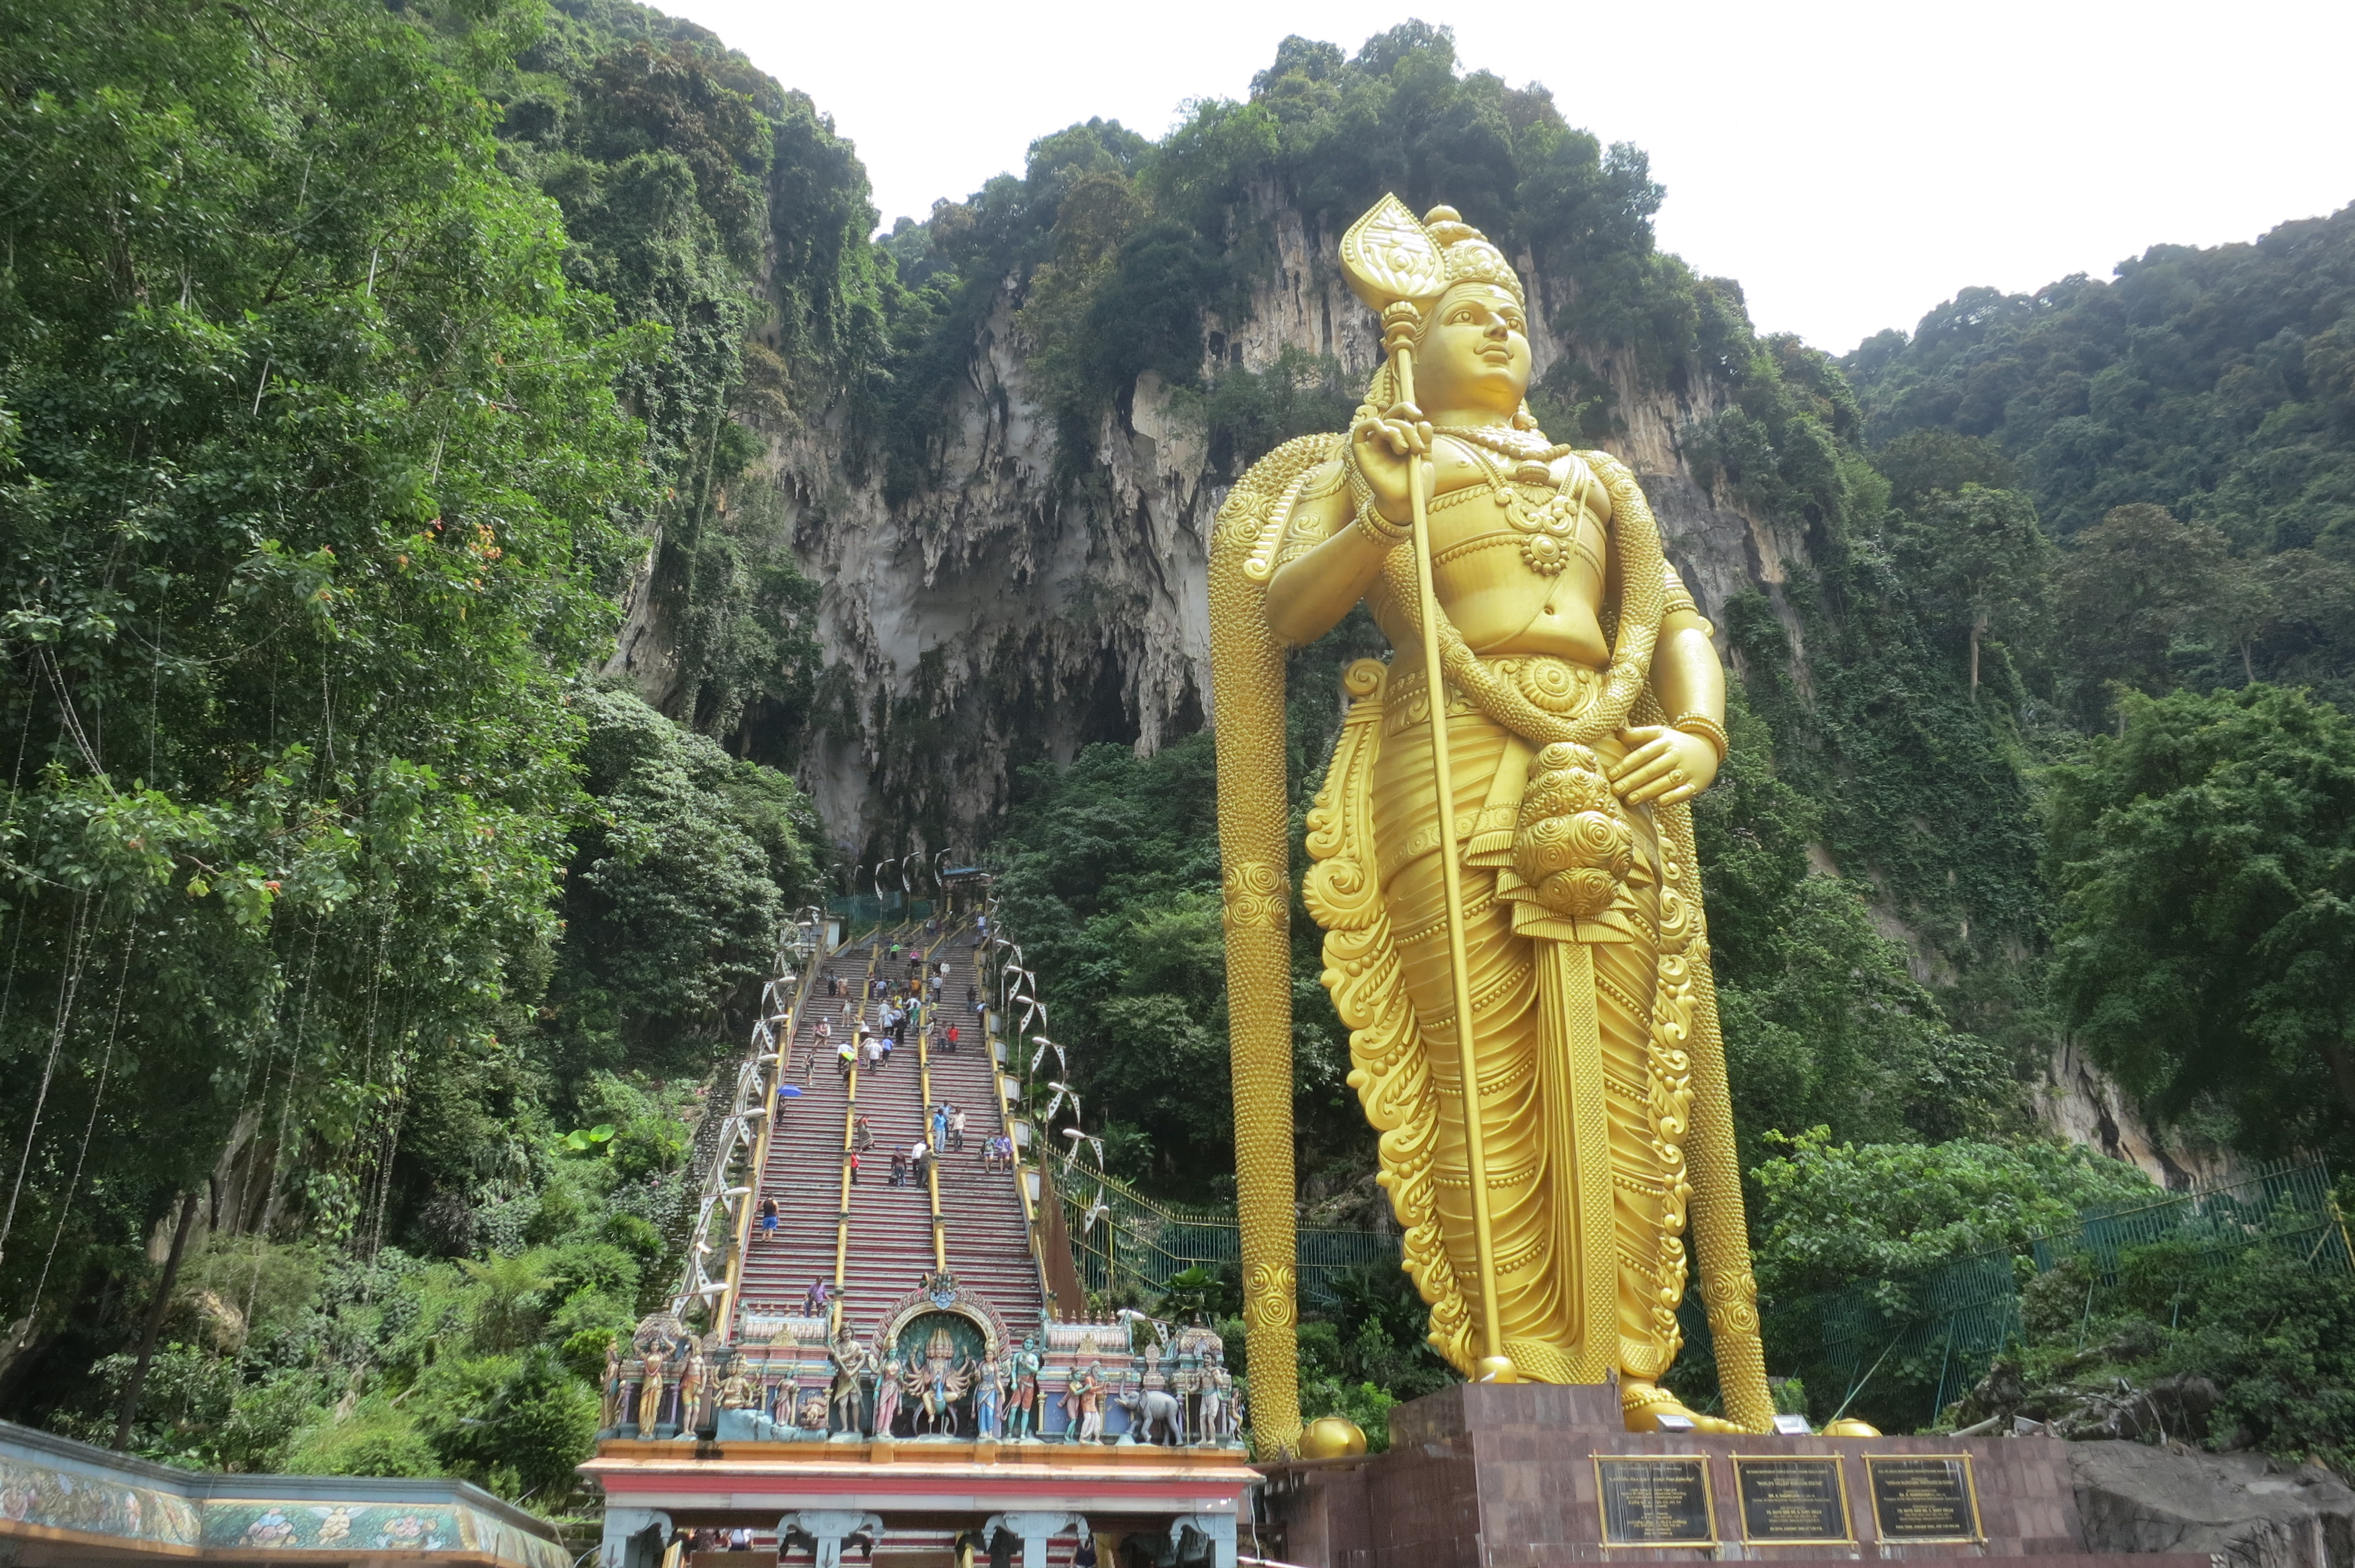 How To Visit the Batu Caves